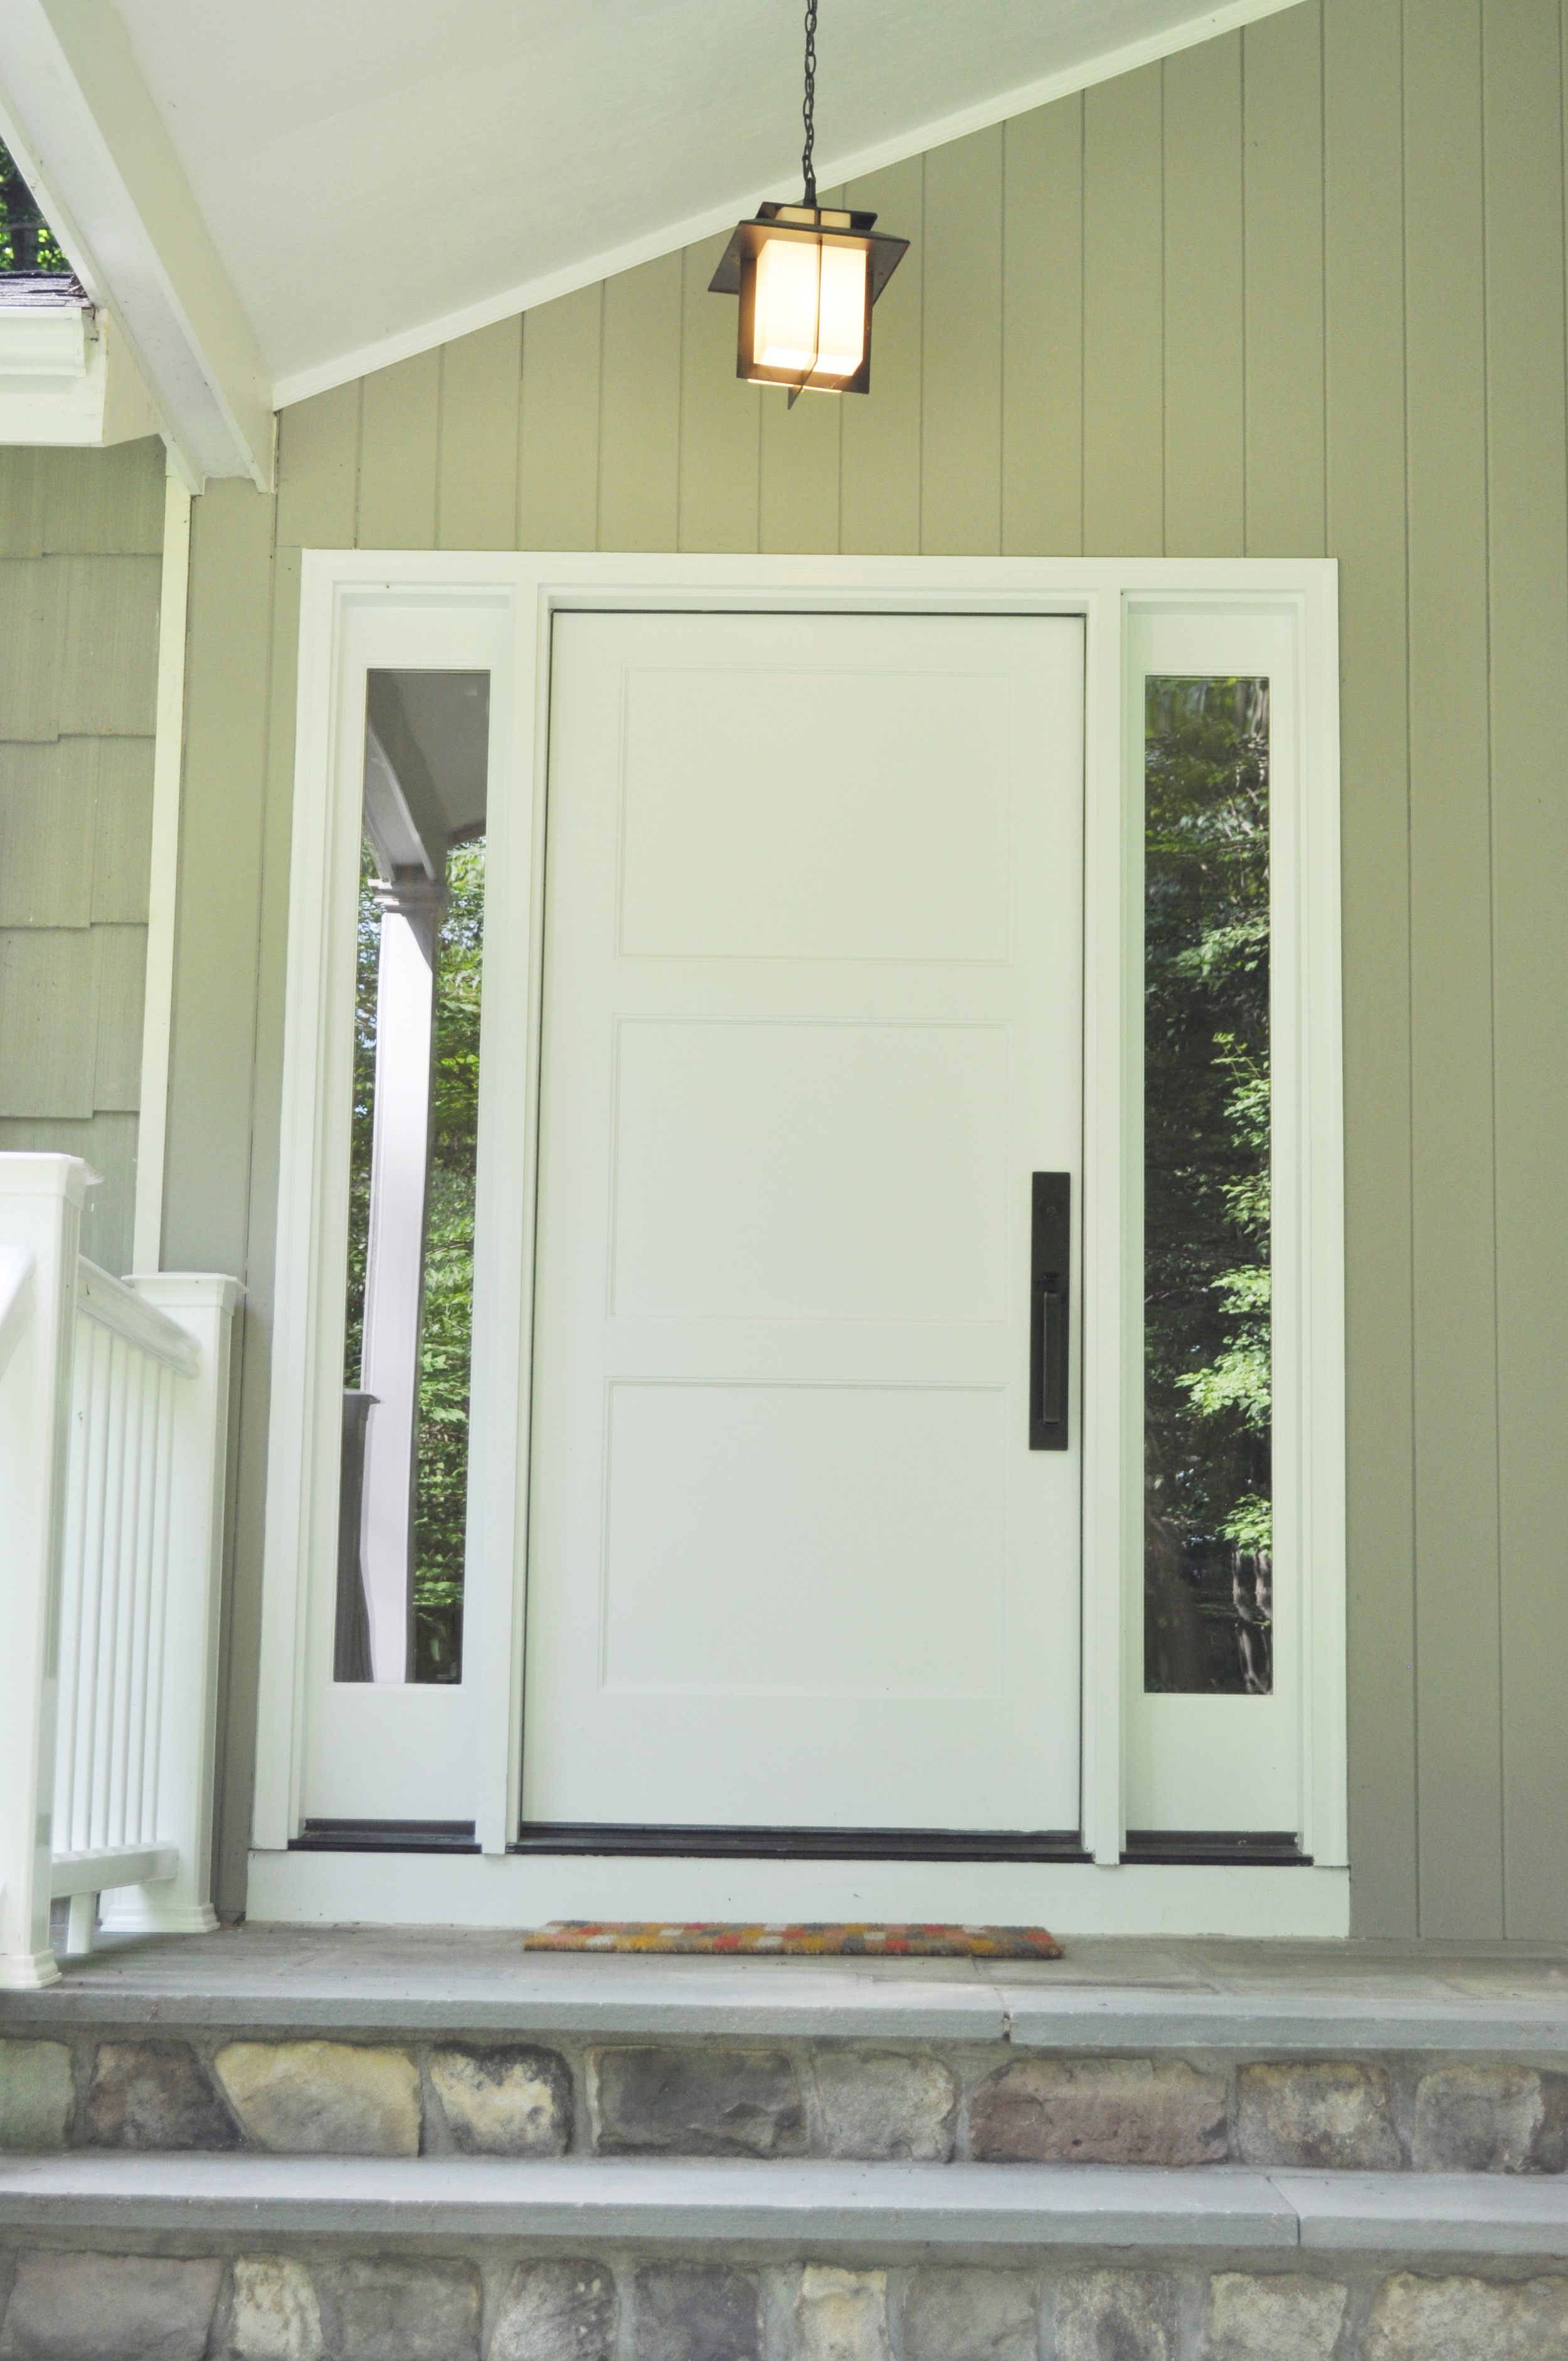 KAM DESIGN LLC_Entry Door Designs_White Front Door_Entry Pendant Light_Oil Rubbed Bronze Hardware_Front Door with Sidelights.jpg